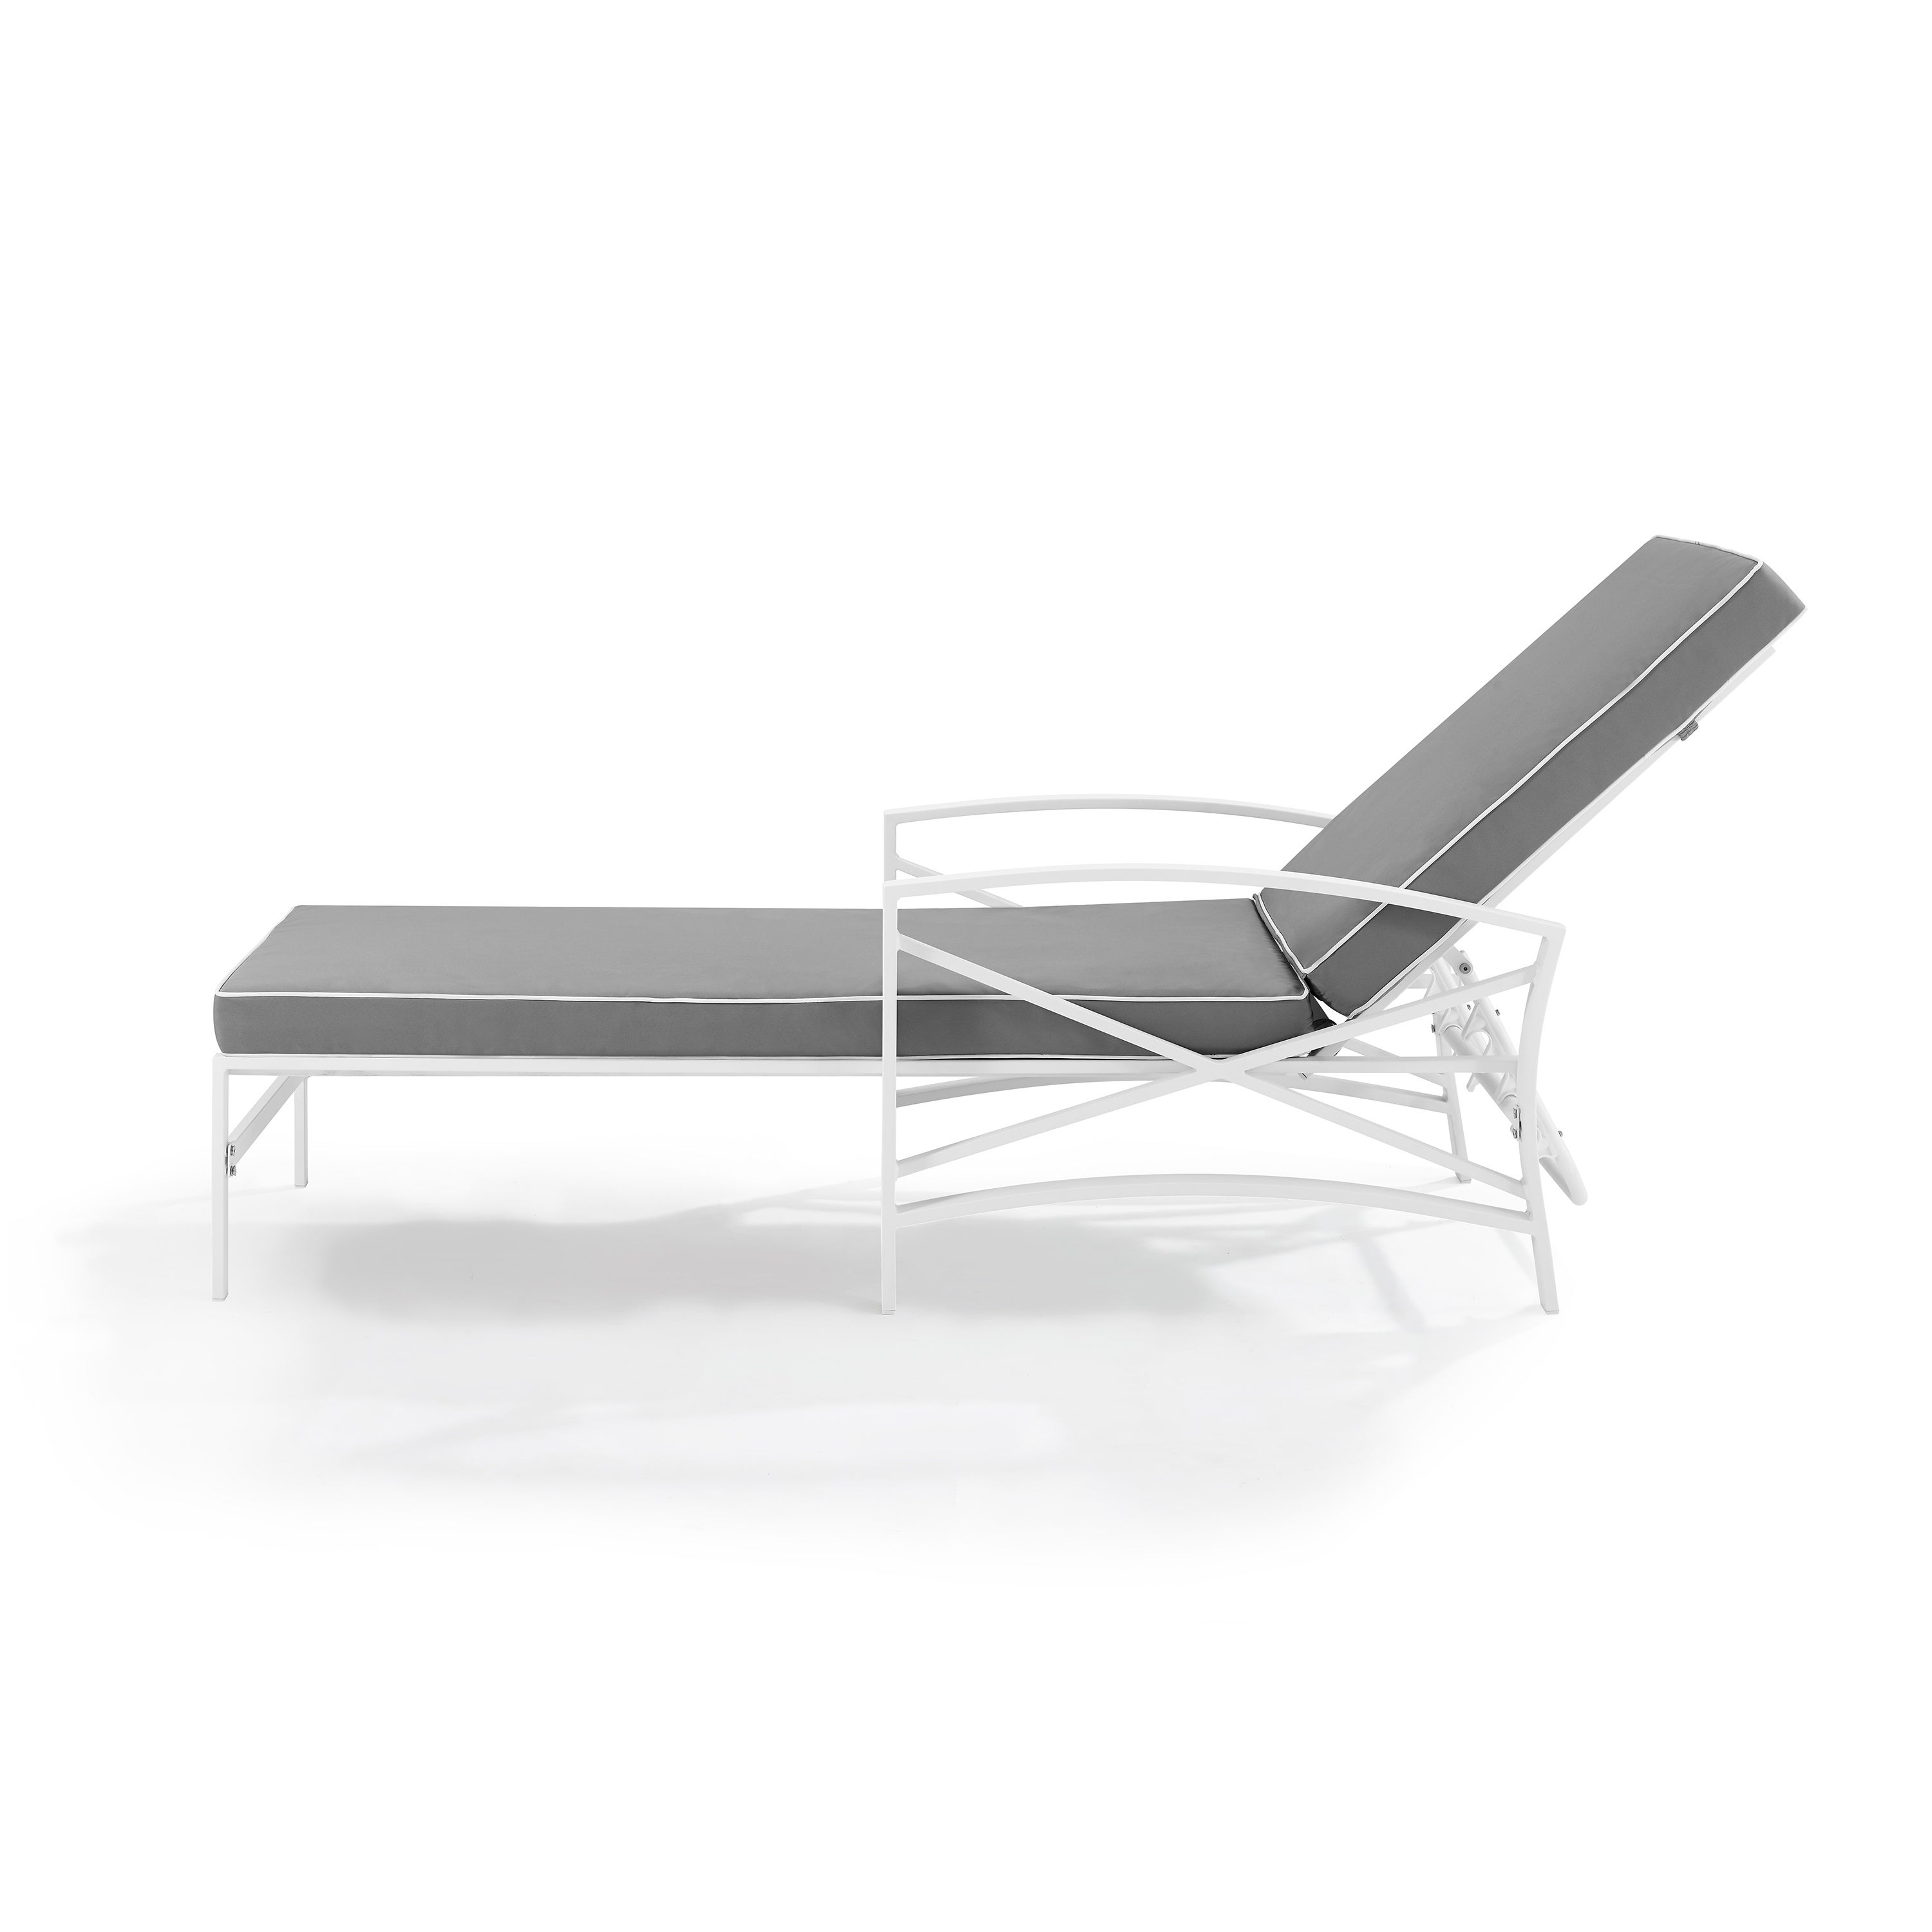 Havenside Home Davis Chaise Lounge Chair In White With Grey Cushions In 2019 Lounge Chairs In White With Grey Cushions (View 22 of 25)